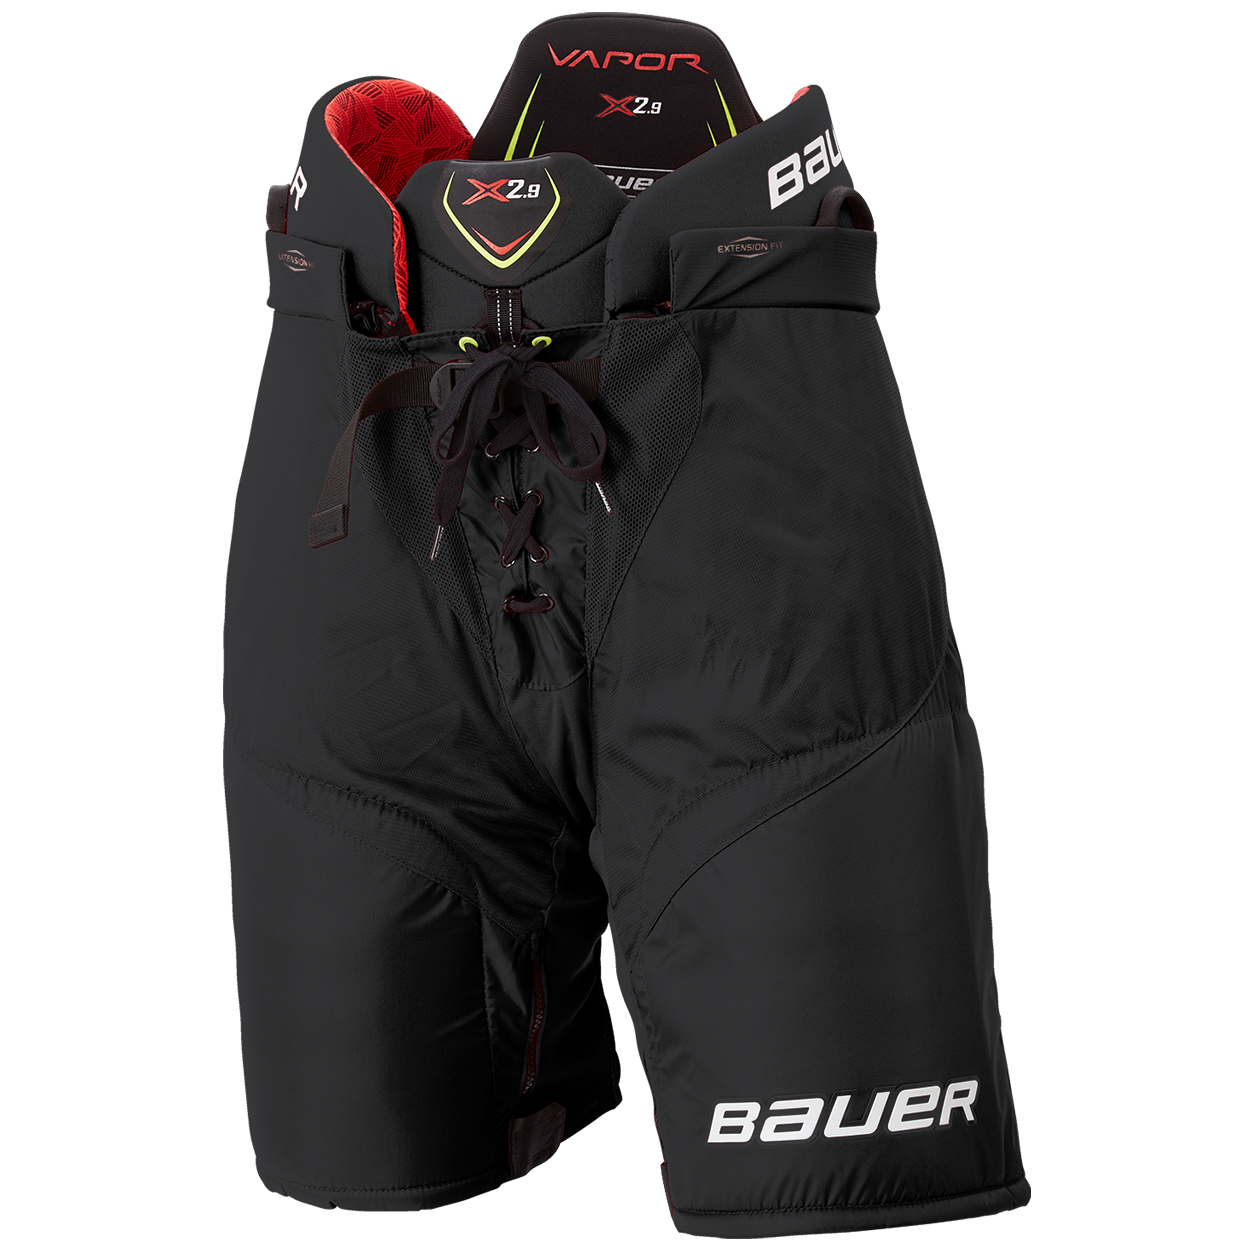 VAPOR X2.9 Pants Senior